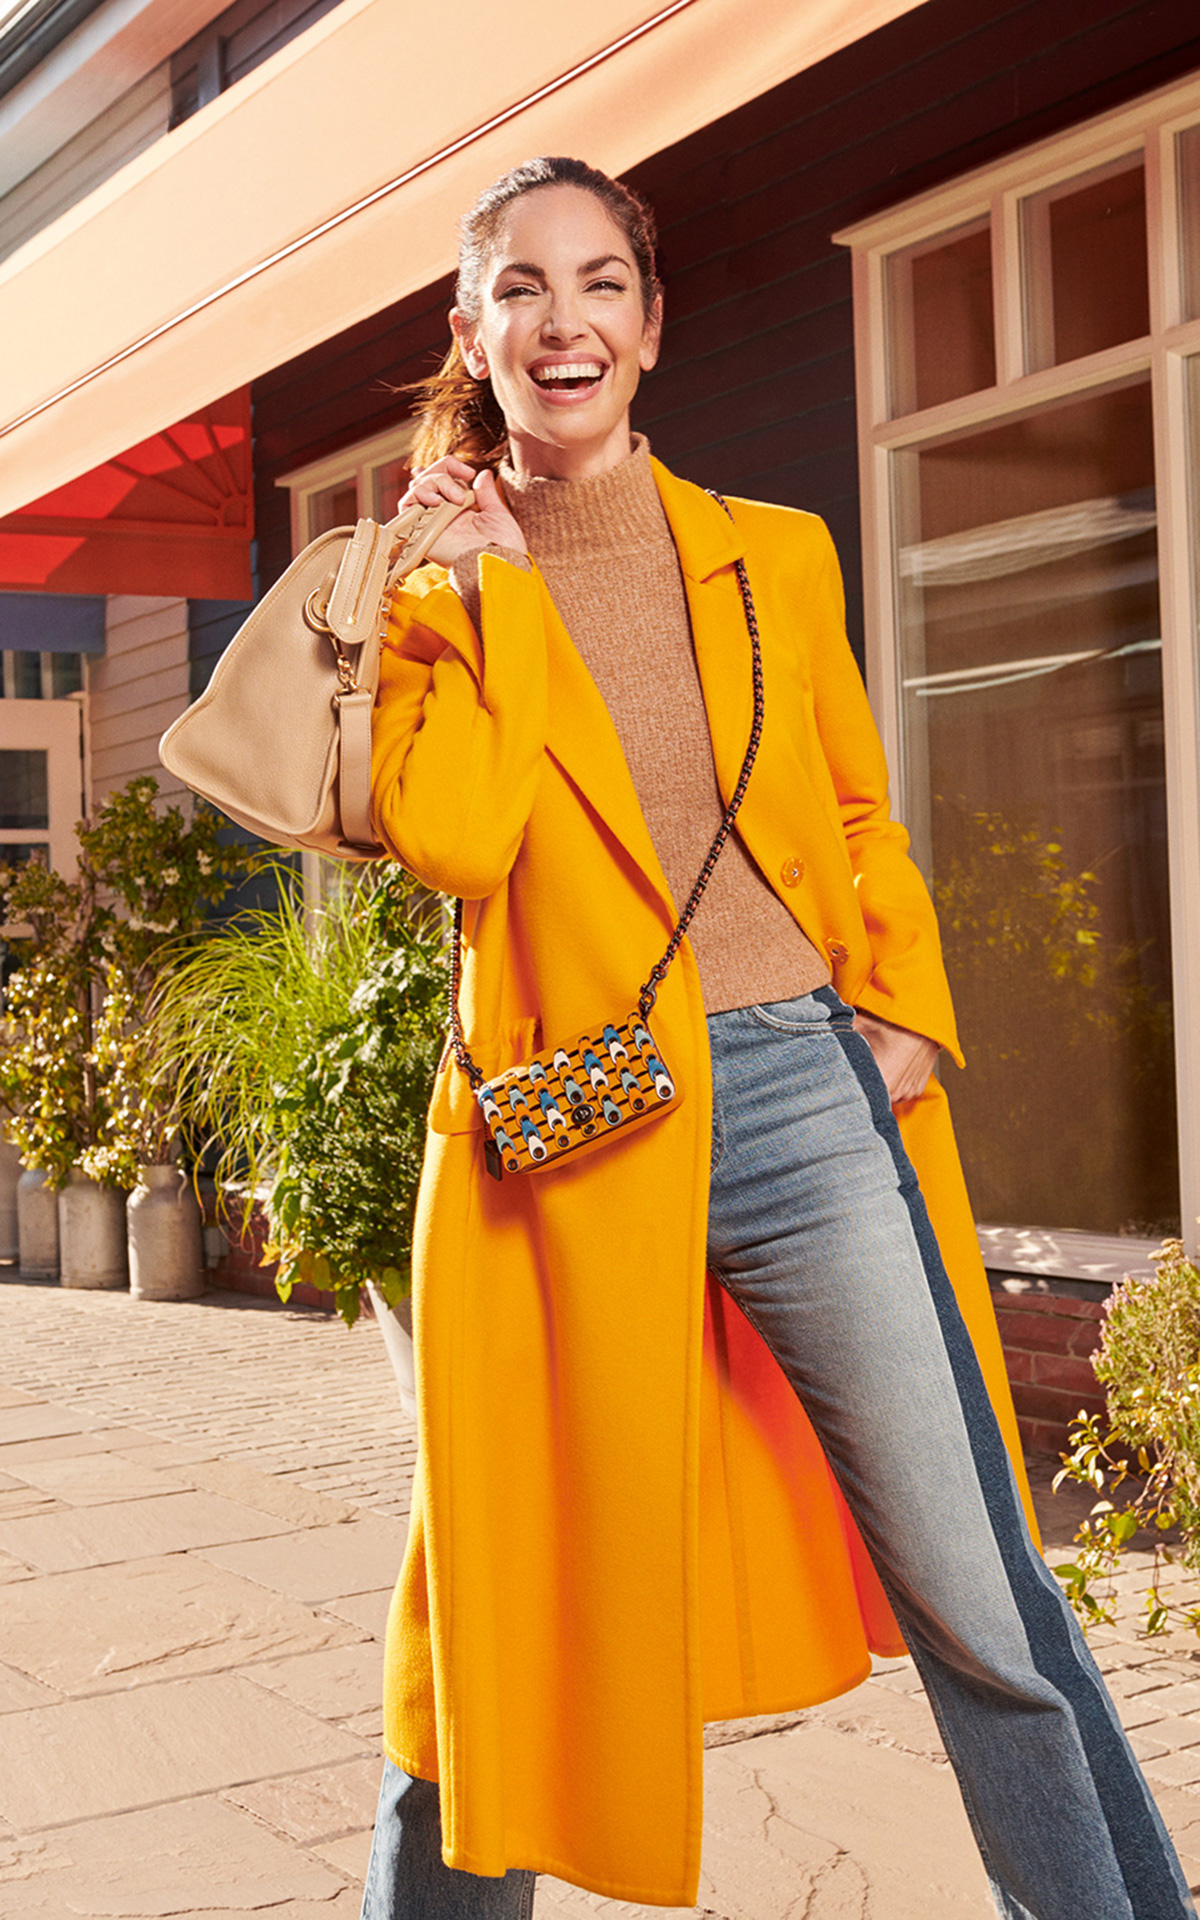 Eugenia Silva para la campaña de otoño en The Bicester Village Shopping Collection